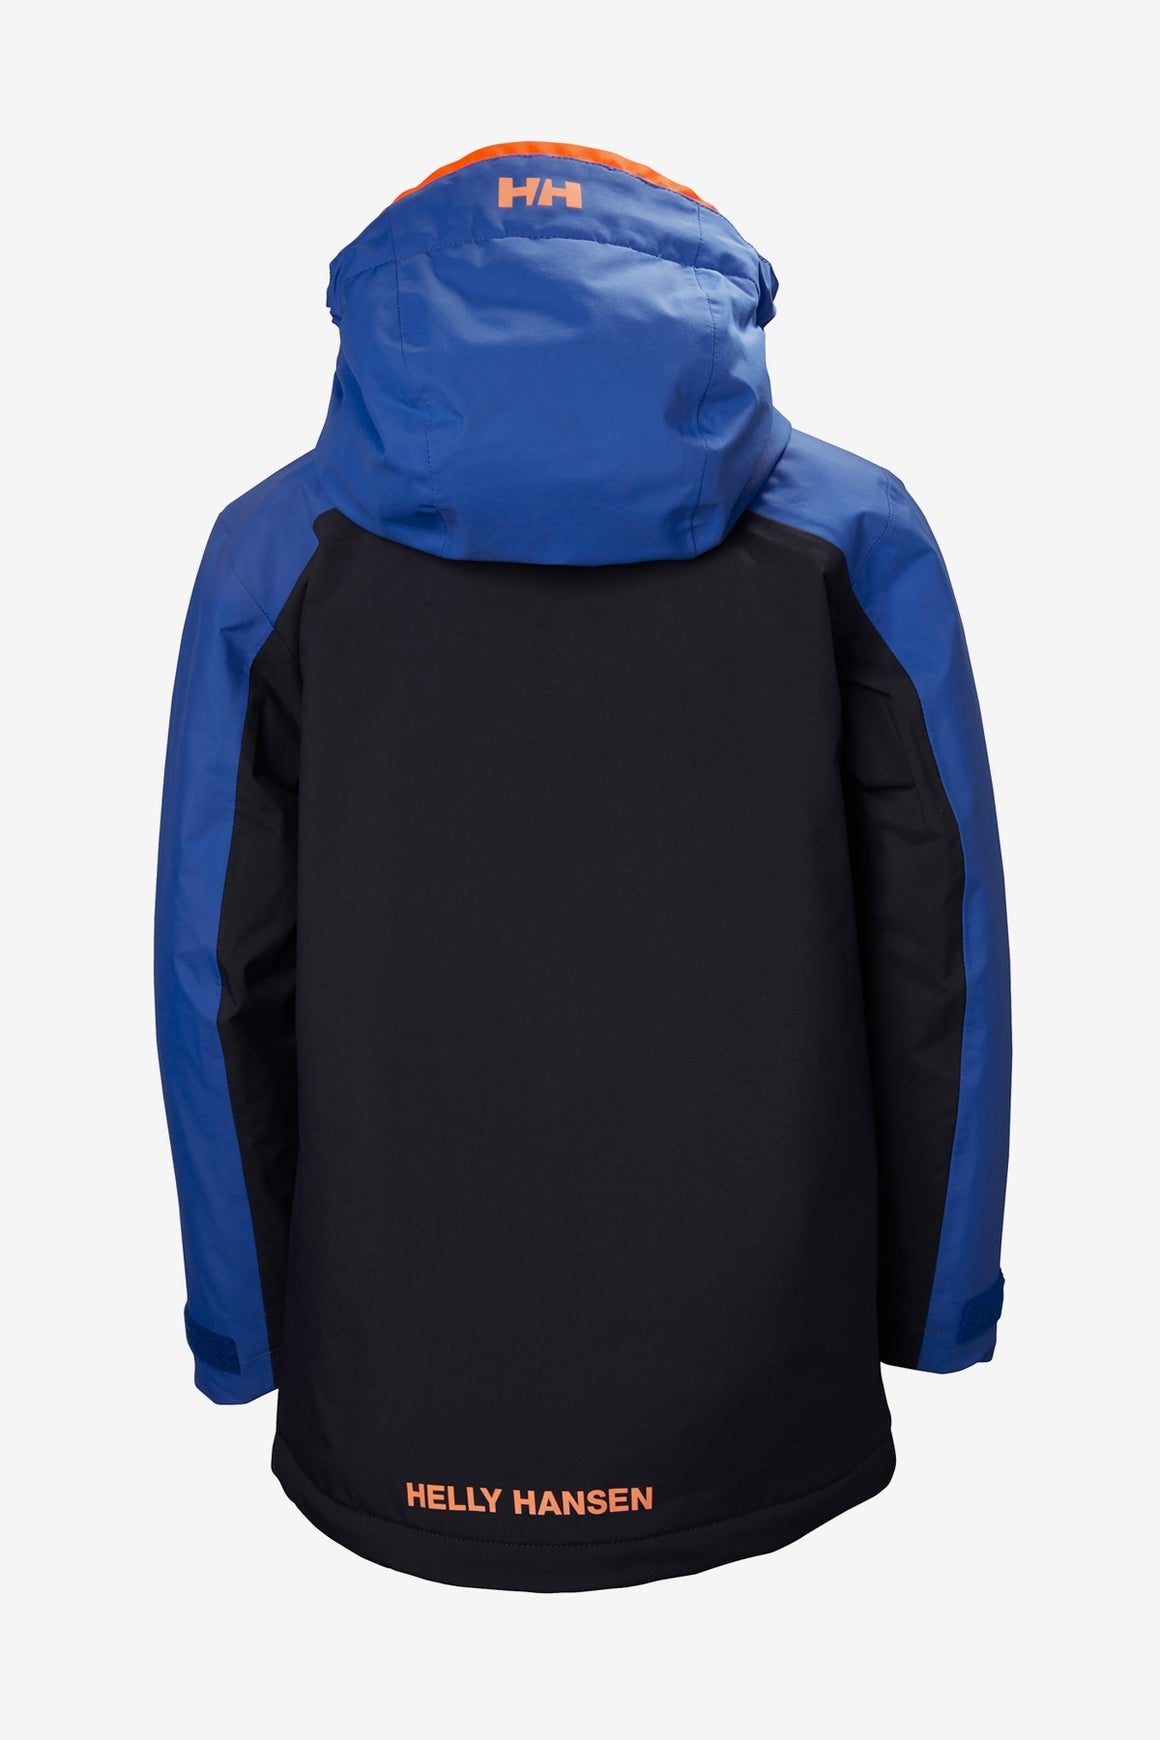 Helly Hansen Jr Hillside Jacket - Olympian Blue